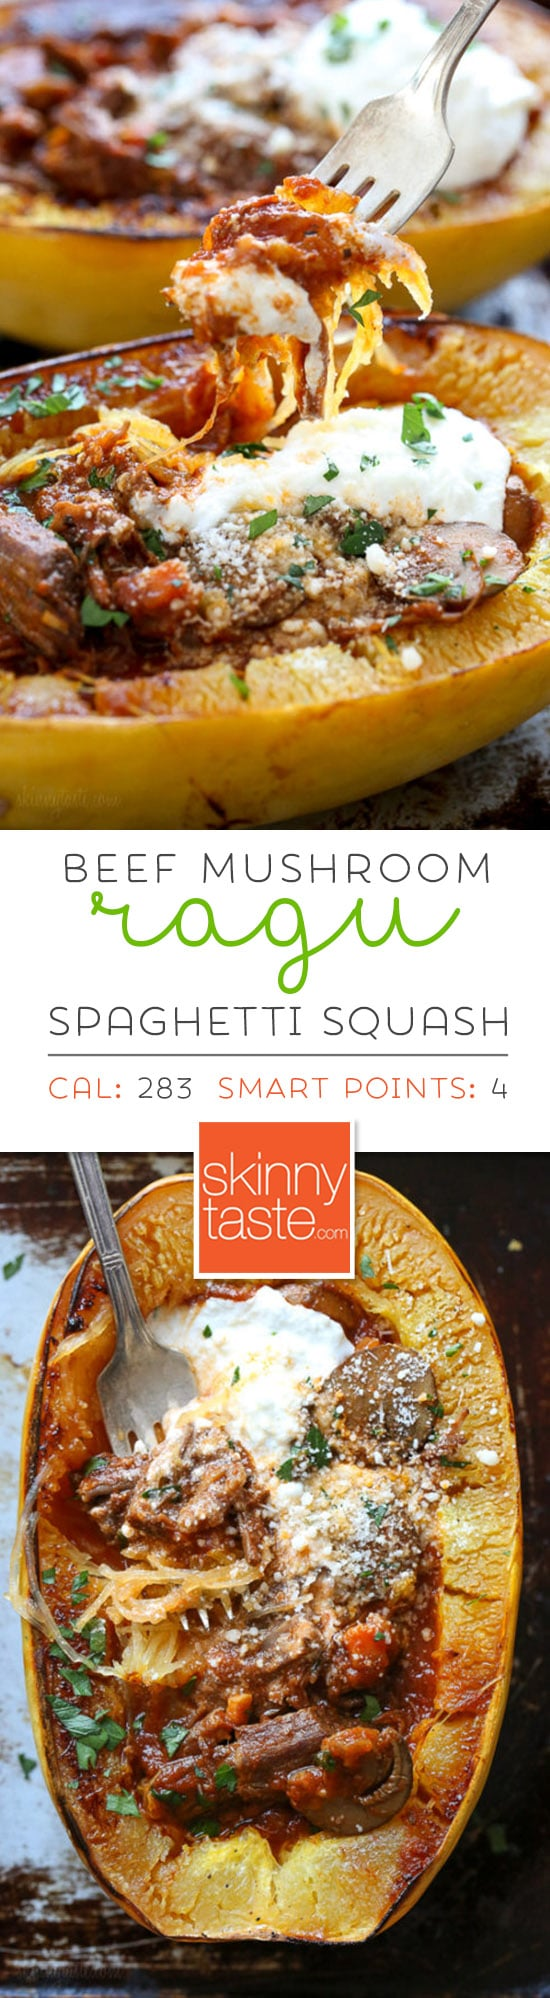 I swapped traditional pasta for roasted spaghetti squash to enjoy this cozy and delicious Beef and Mushroom Ragu served with a dallop of ricotta and grated Pecorino Romano – you won't miss the pasta! #instantpot #spaghettisquash